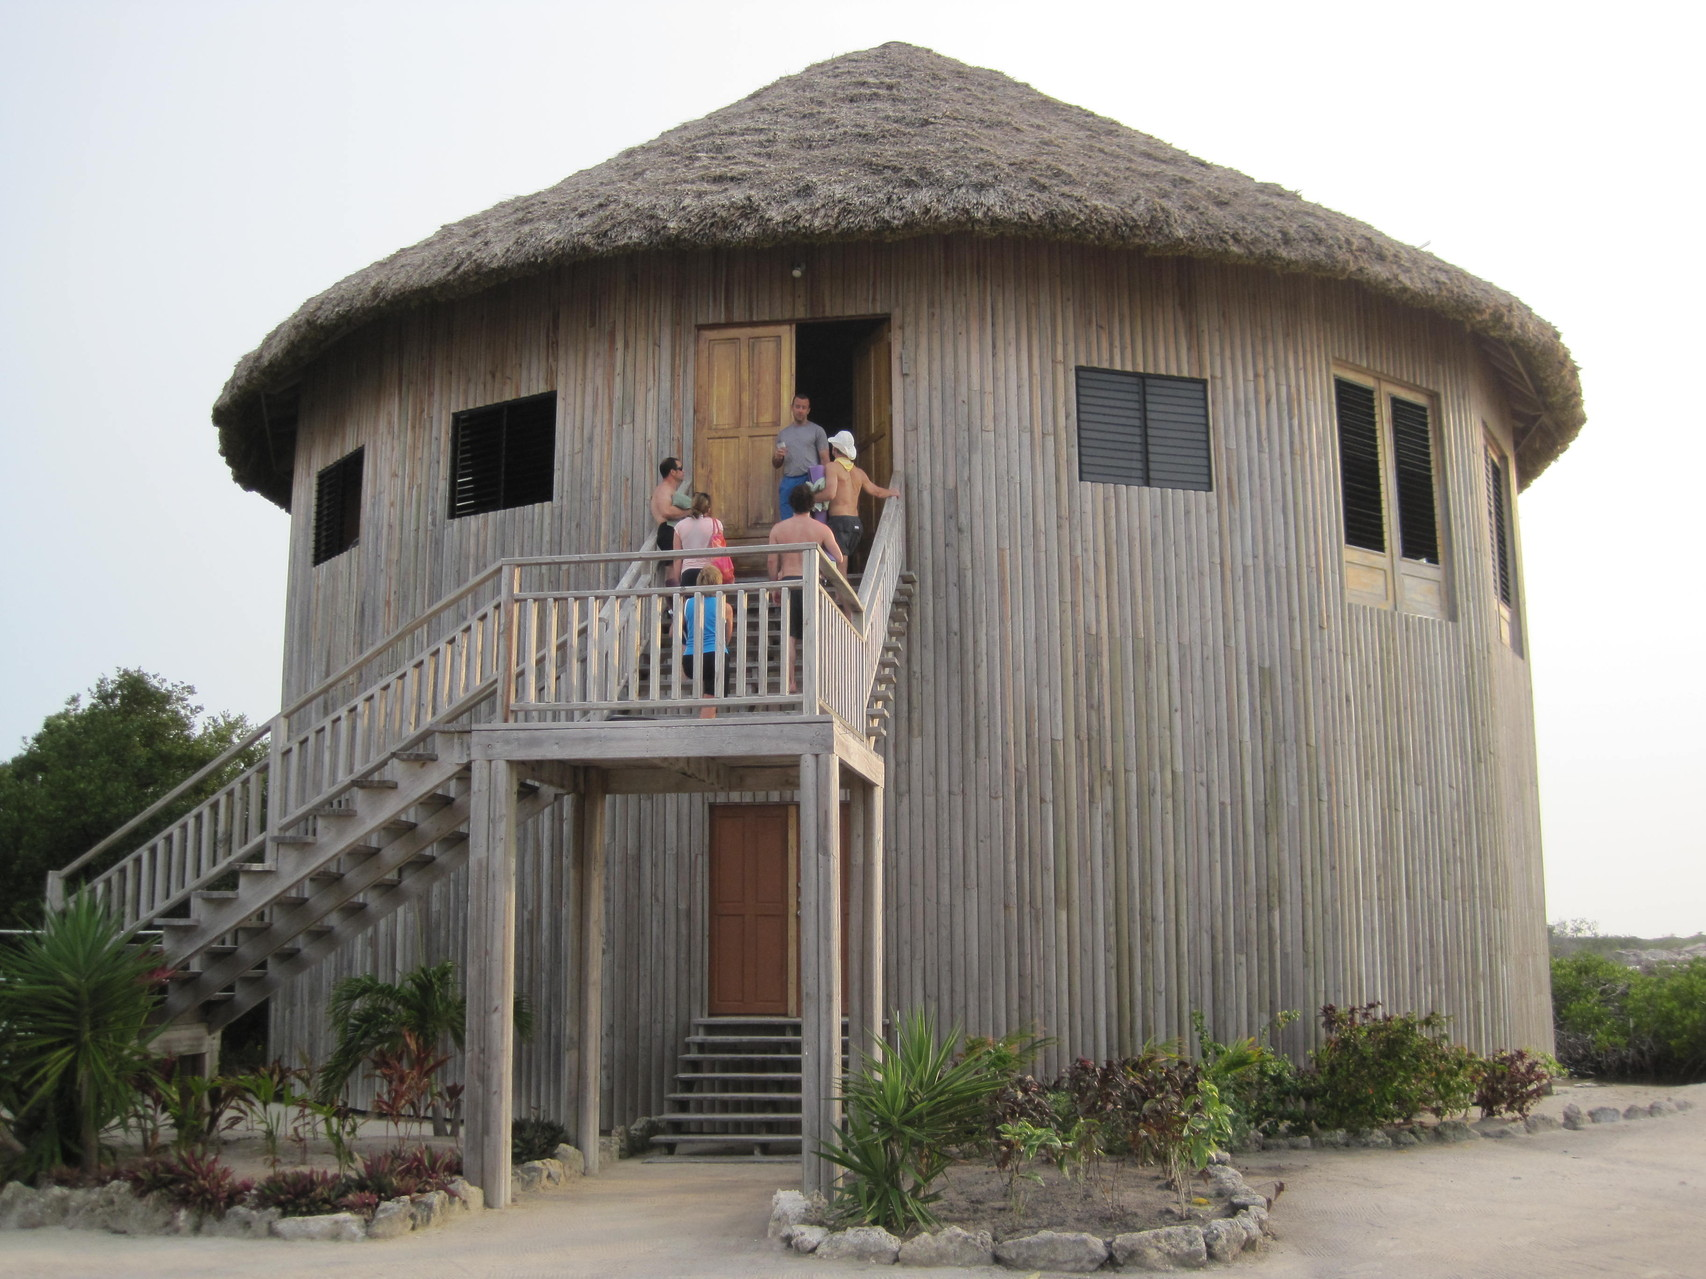 This is the amazing two story structure where we meet to practice yoga every day.